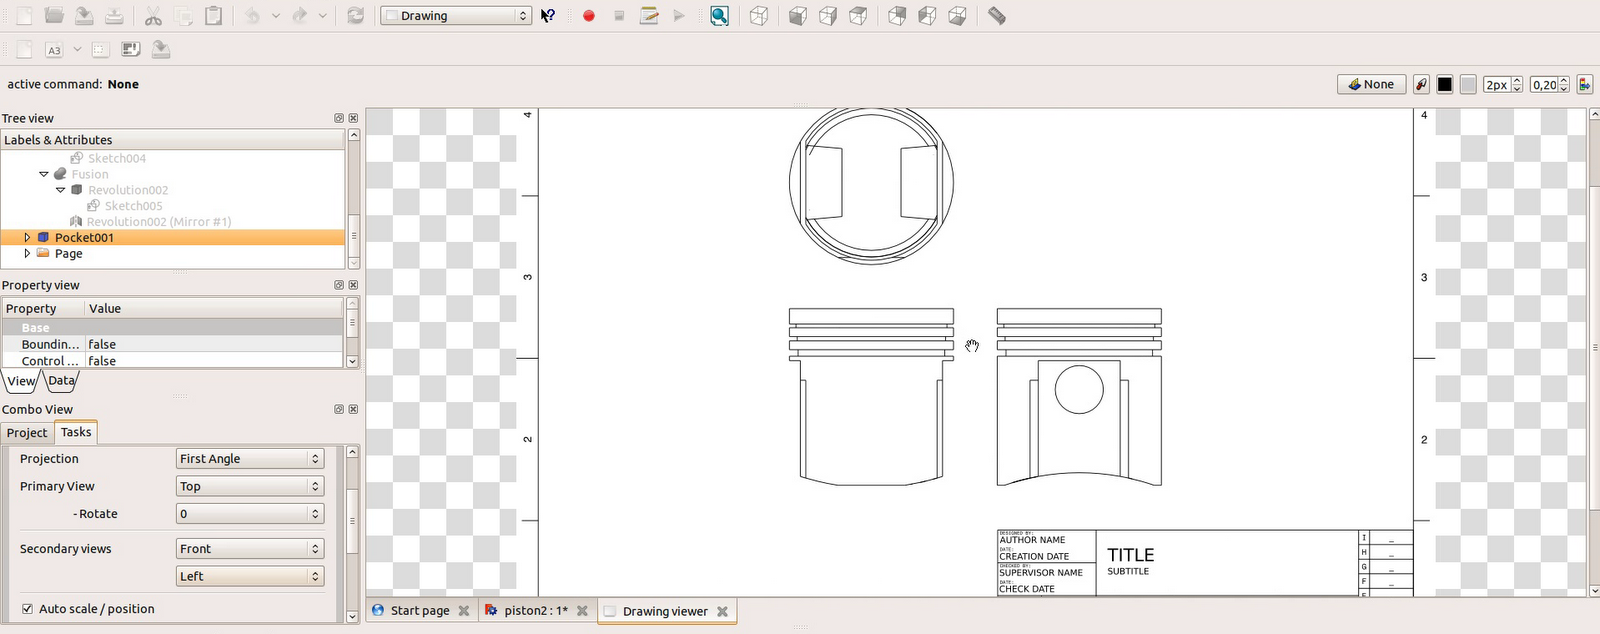 Freecad tutorial engine 10 piston select last shape pocket001 and use insert an orthographic projection of a part in the active drawing you have to define projection type first angle biocorpaavc Gallery